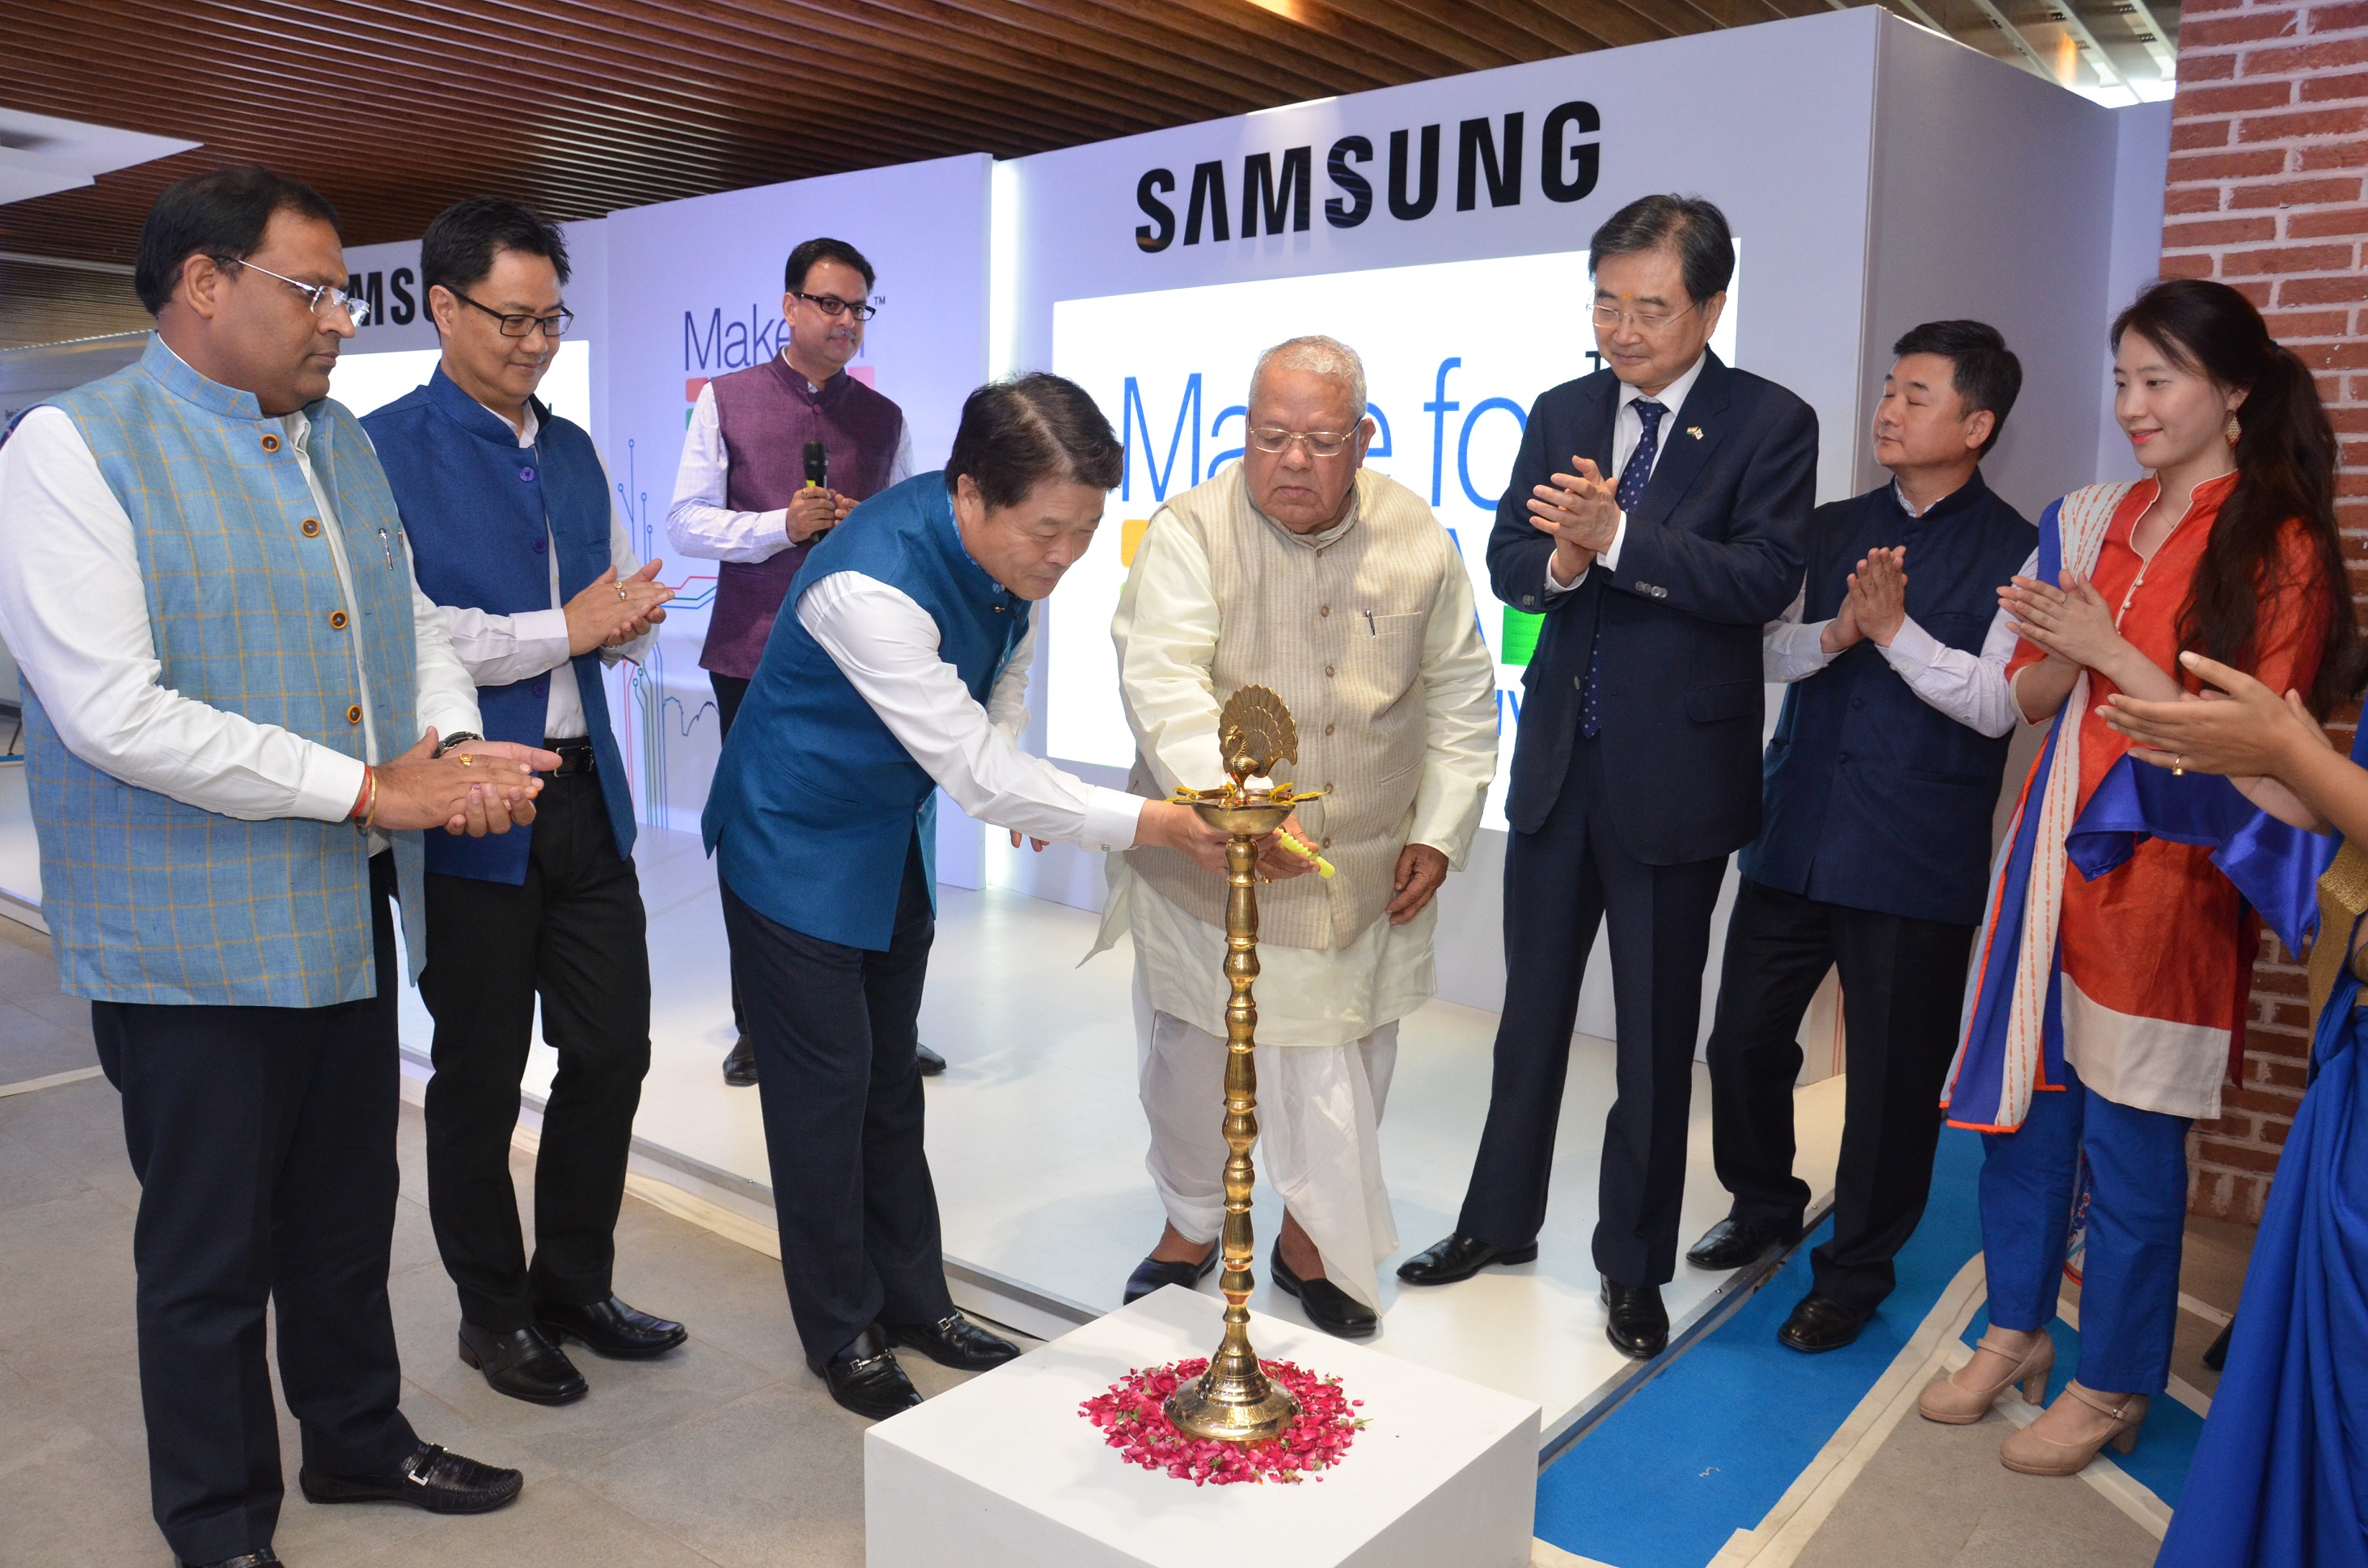 Samsung Moves to a New Corporate Headquarter – Samsung